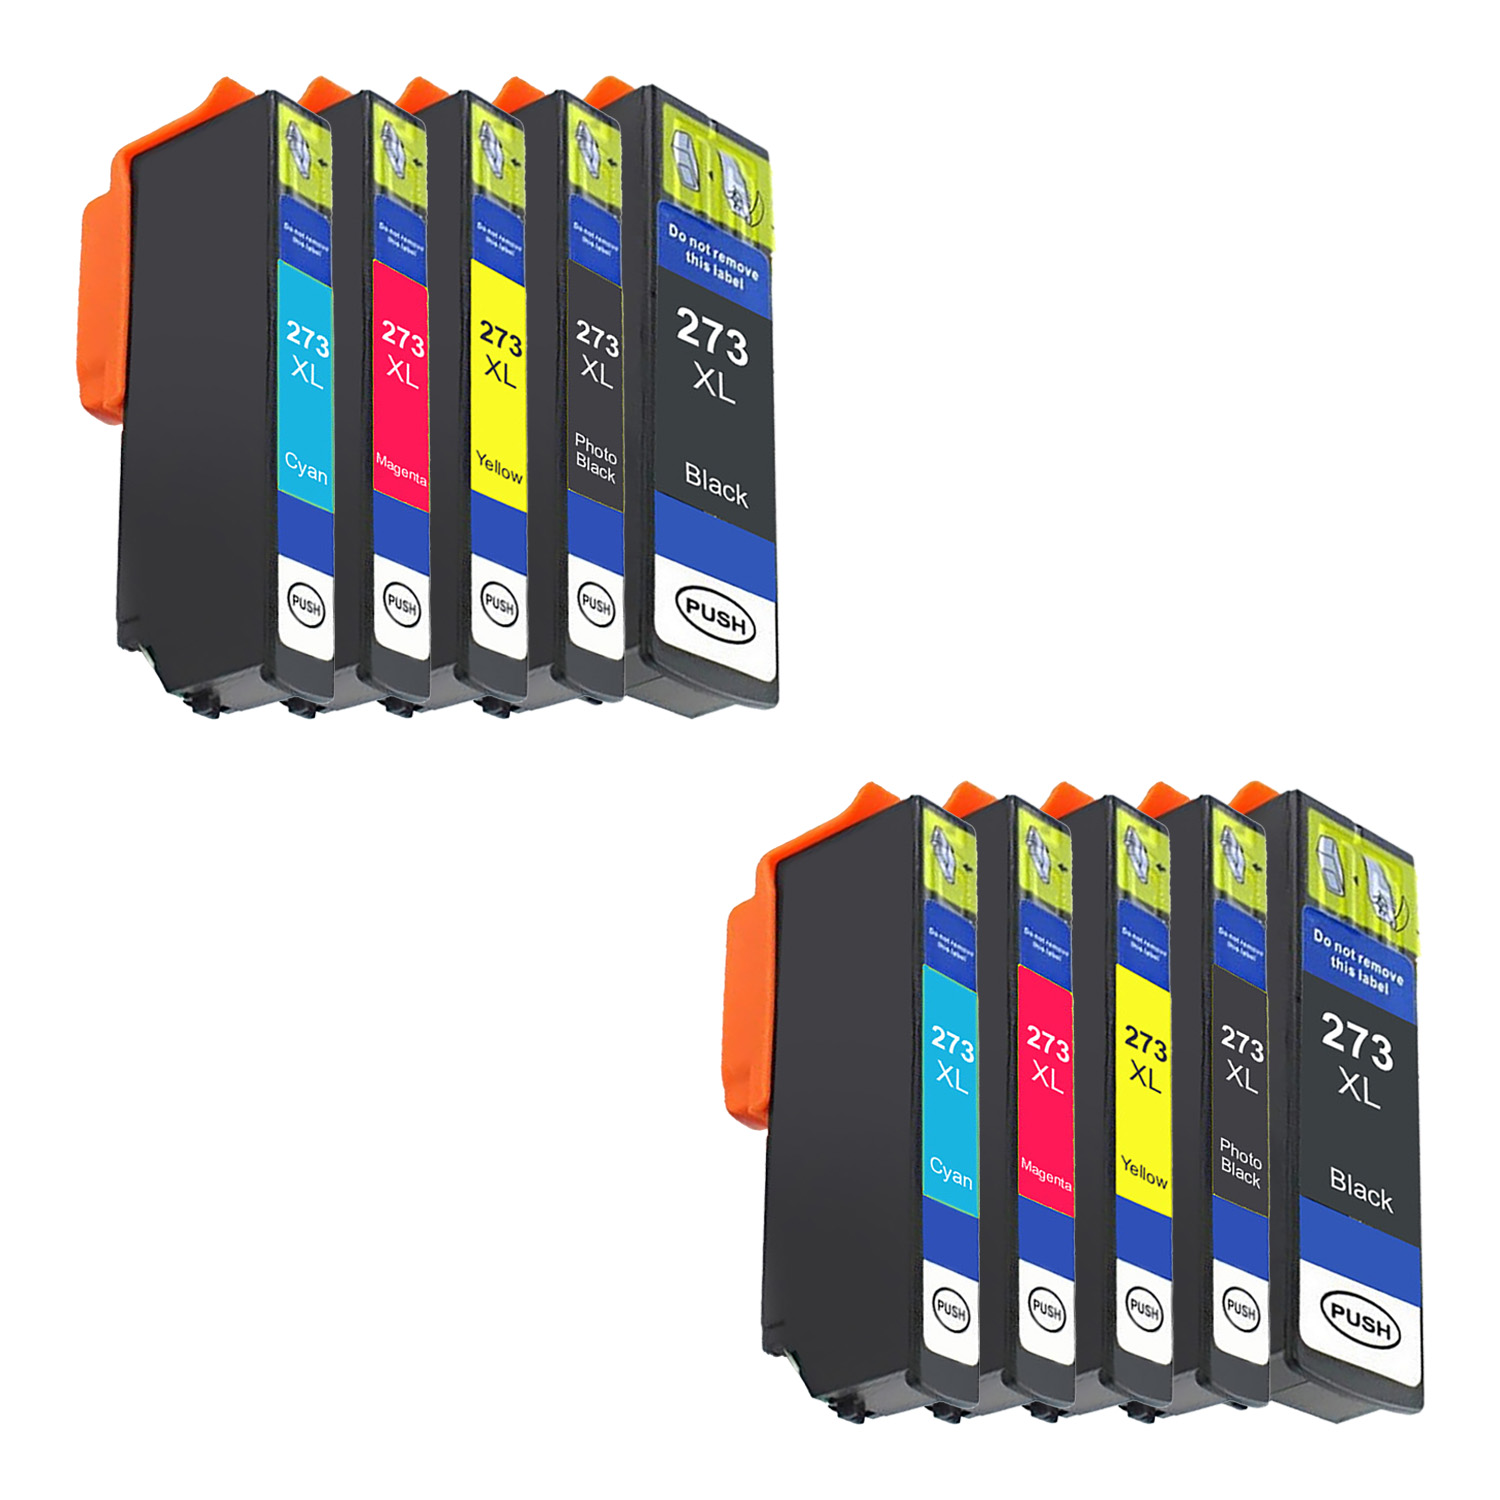 Remanufactured Epson 273XL Inkjet High Capacity Pack - 10 Cartridges